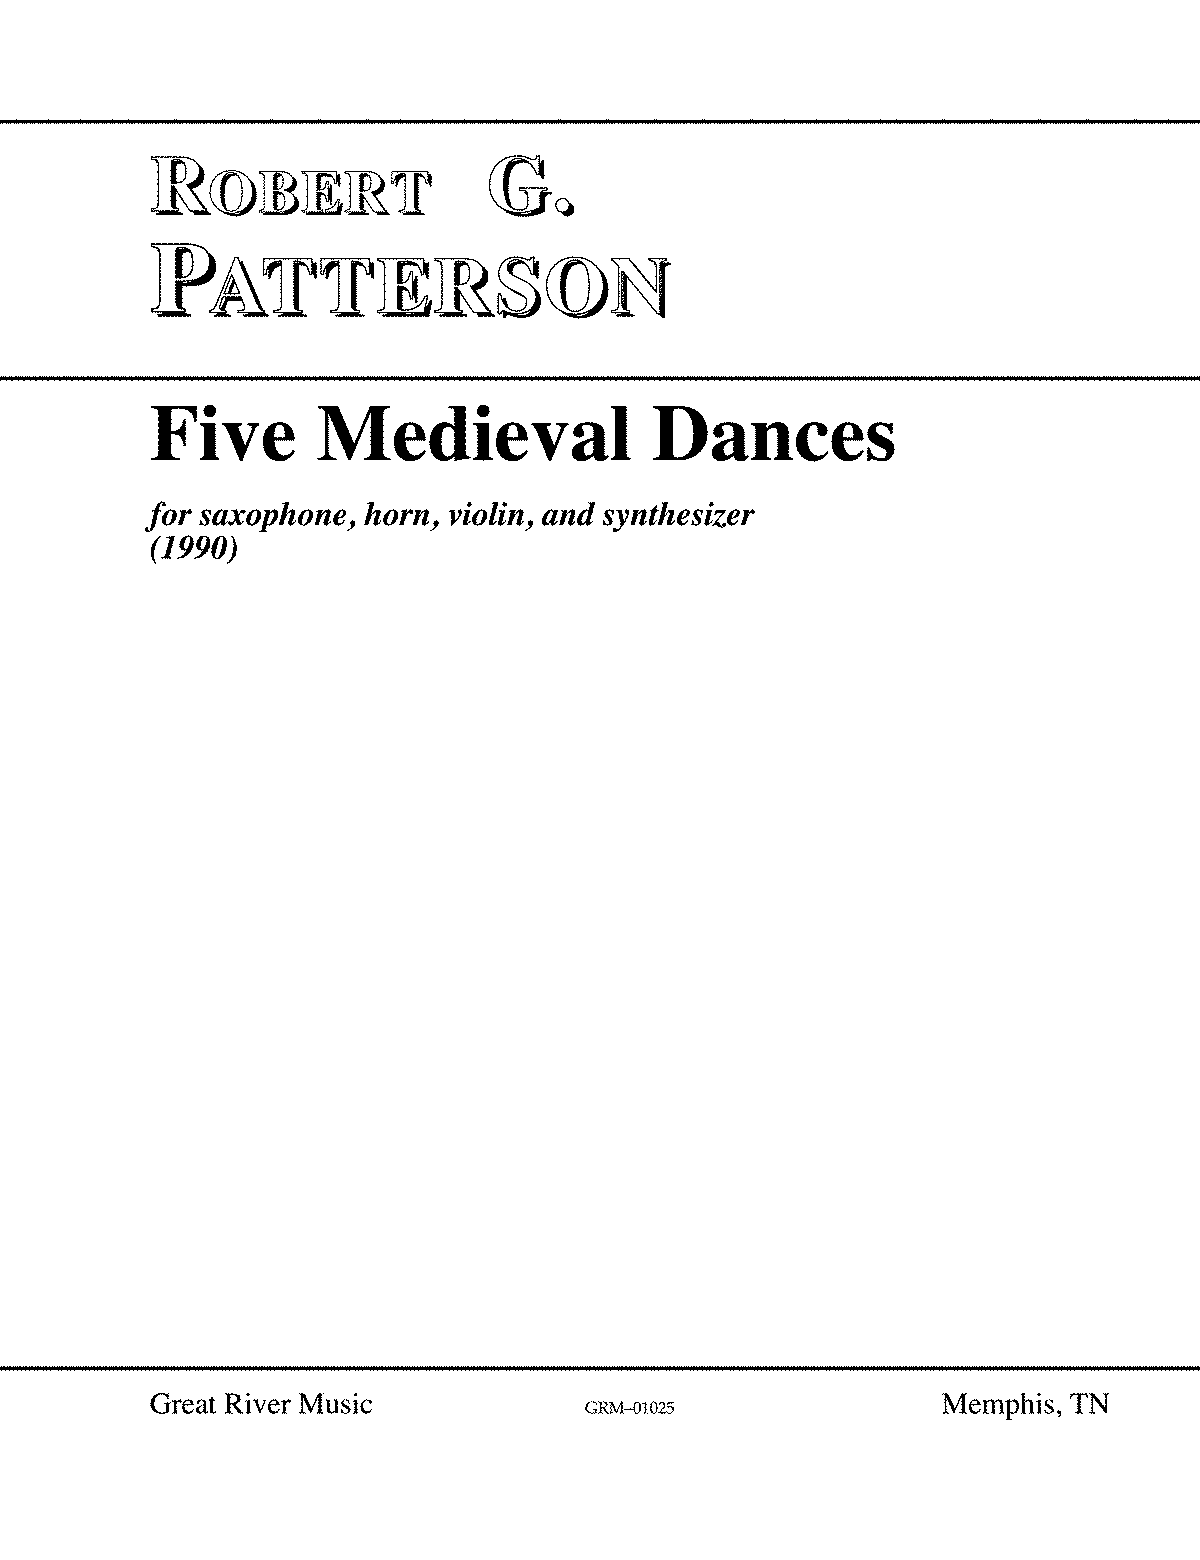 PMLP408030-Patterson-FiveMedievalDances-Mixed - Score.pdf